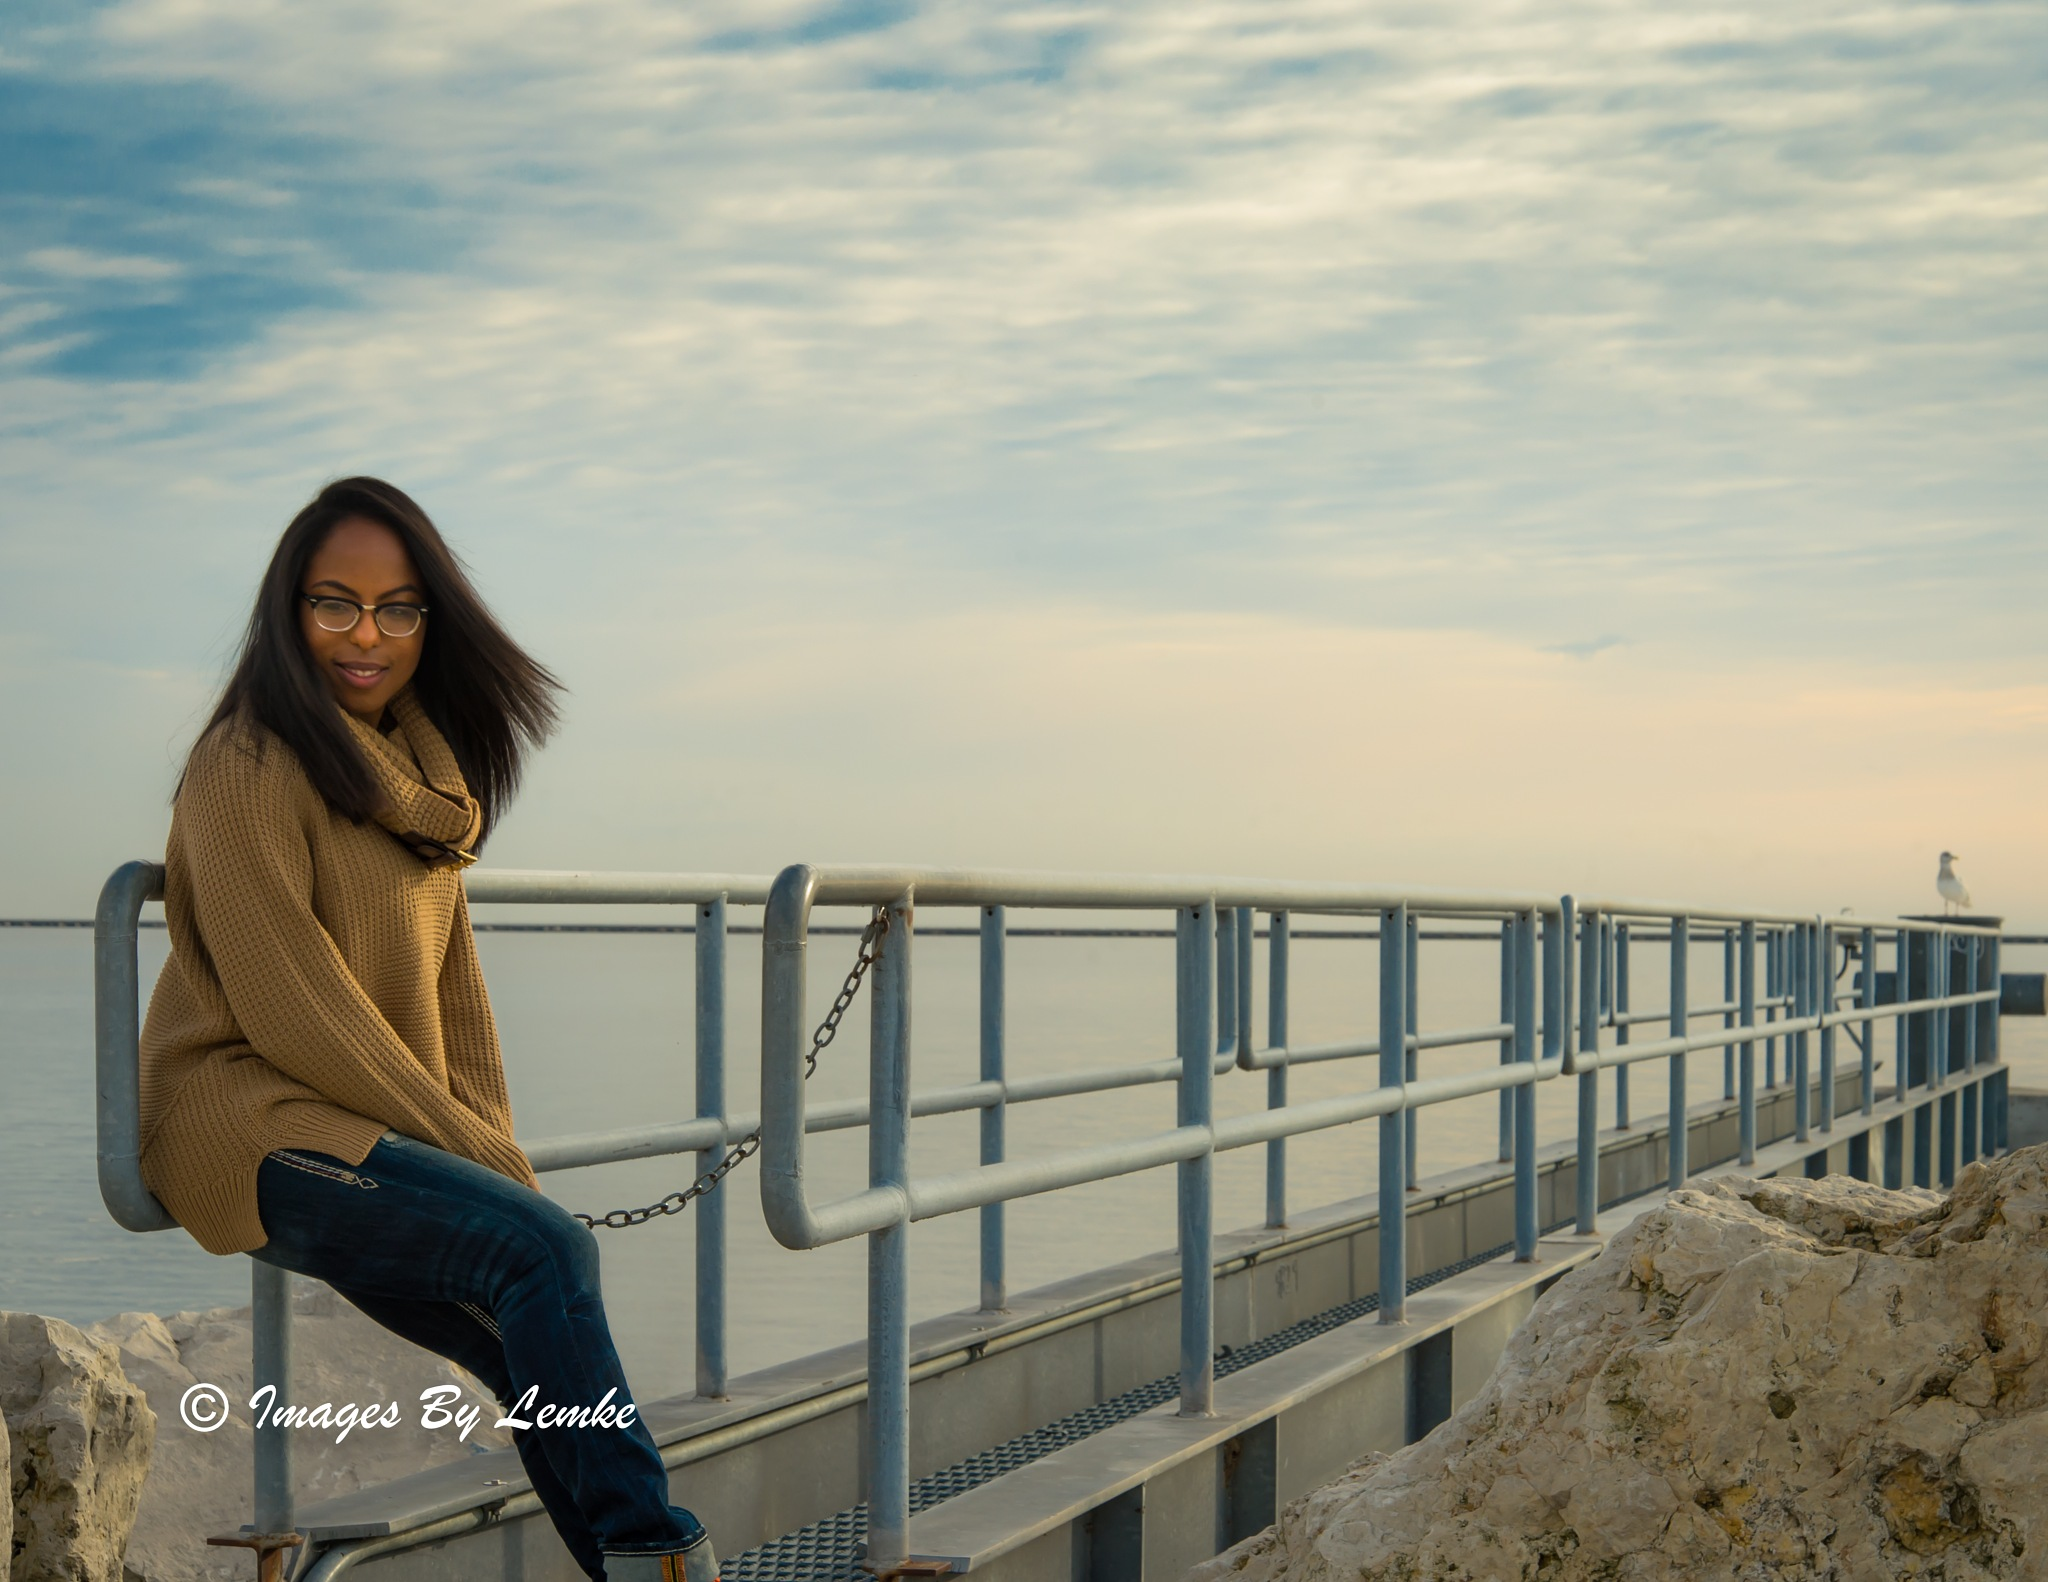 Two Free Spirits by ImagesByLemke